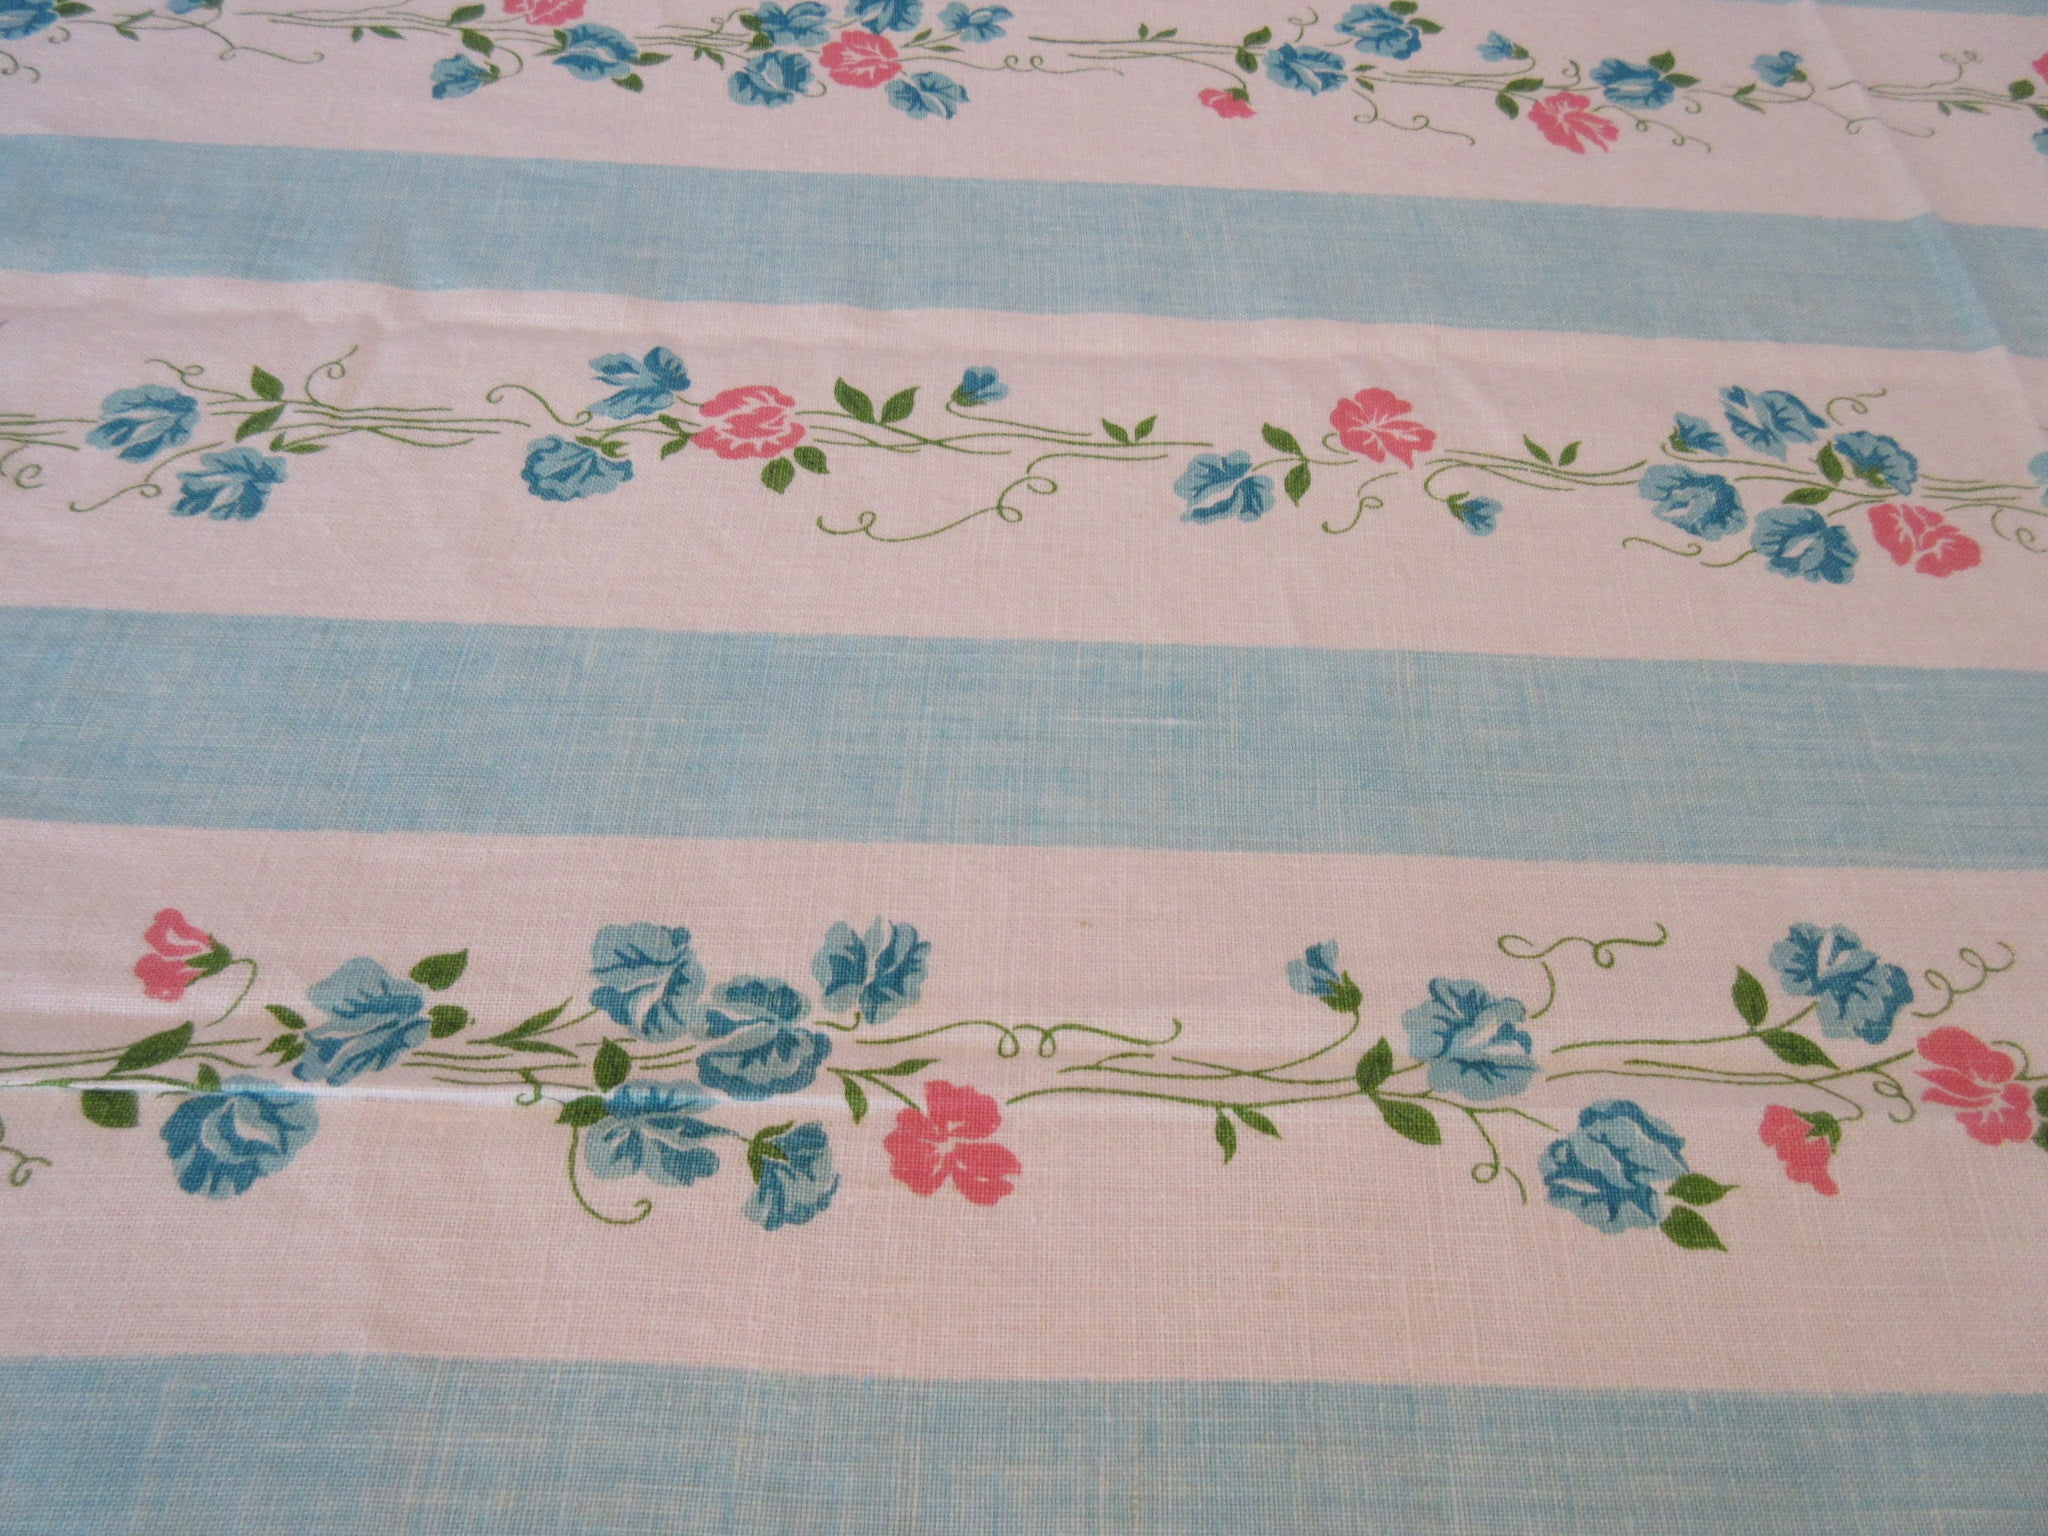 Large Pink Sweet Peas on Aqua Turquoise Linen Floral Vintage Printed Tablecloth (85 X 56)